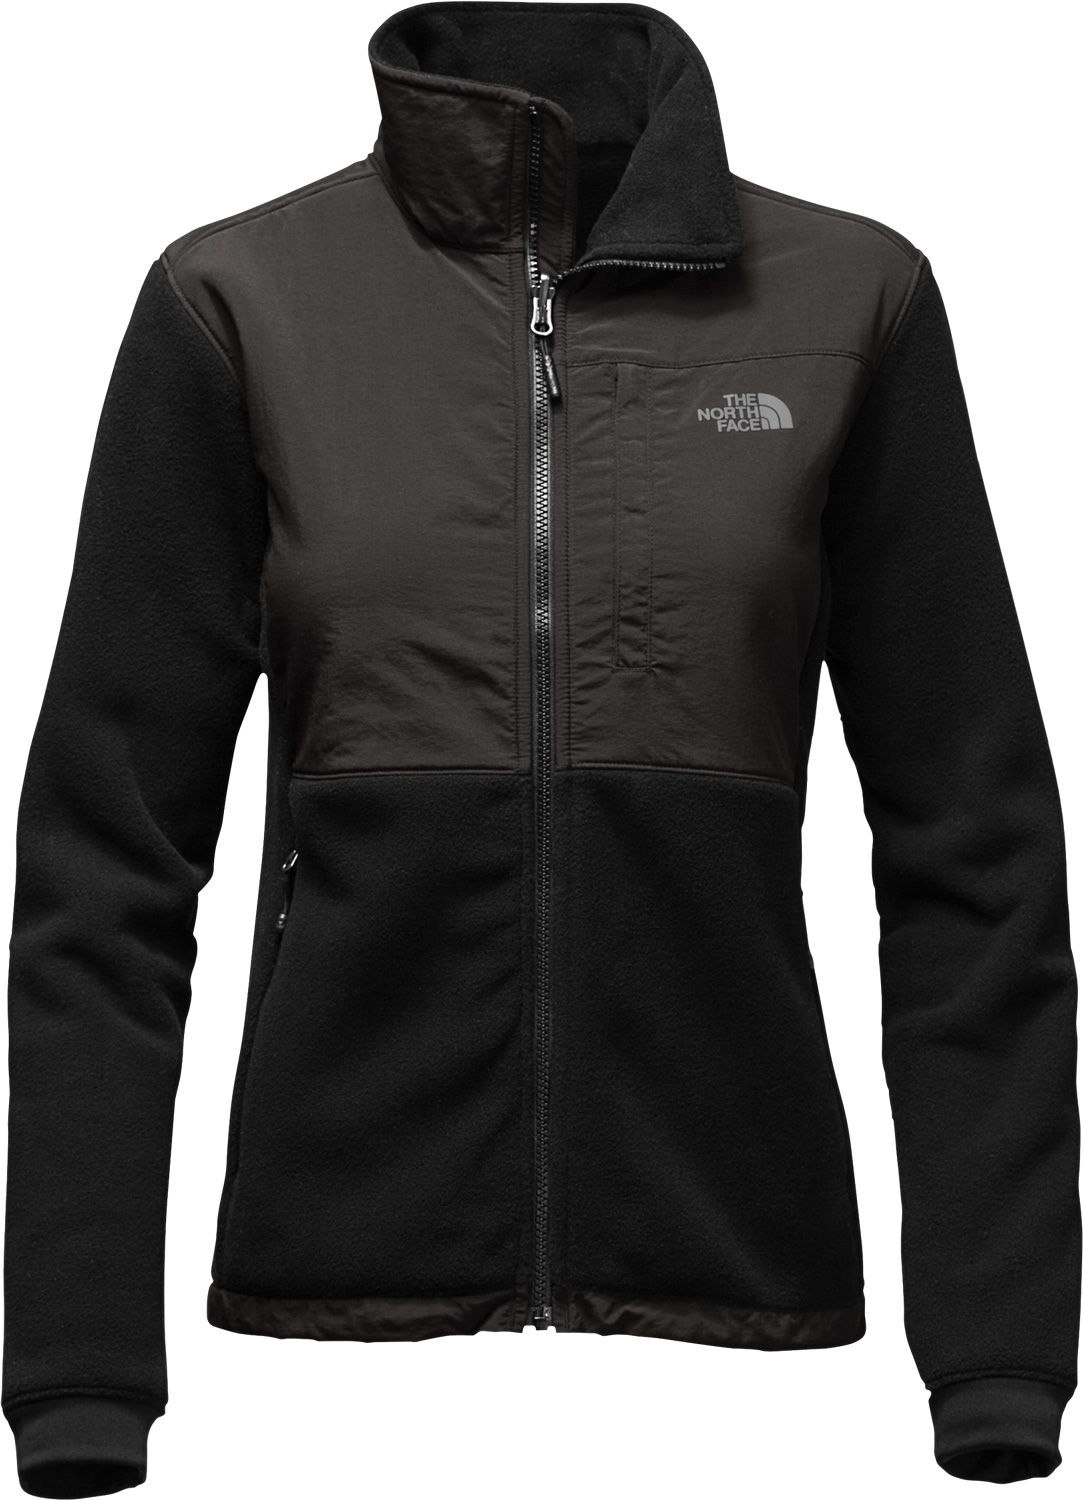 The North Face Women's Fleece & Pullovers | DICK'S Sporting Goods